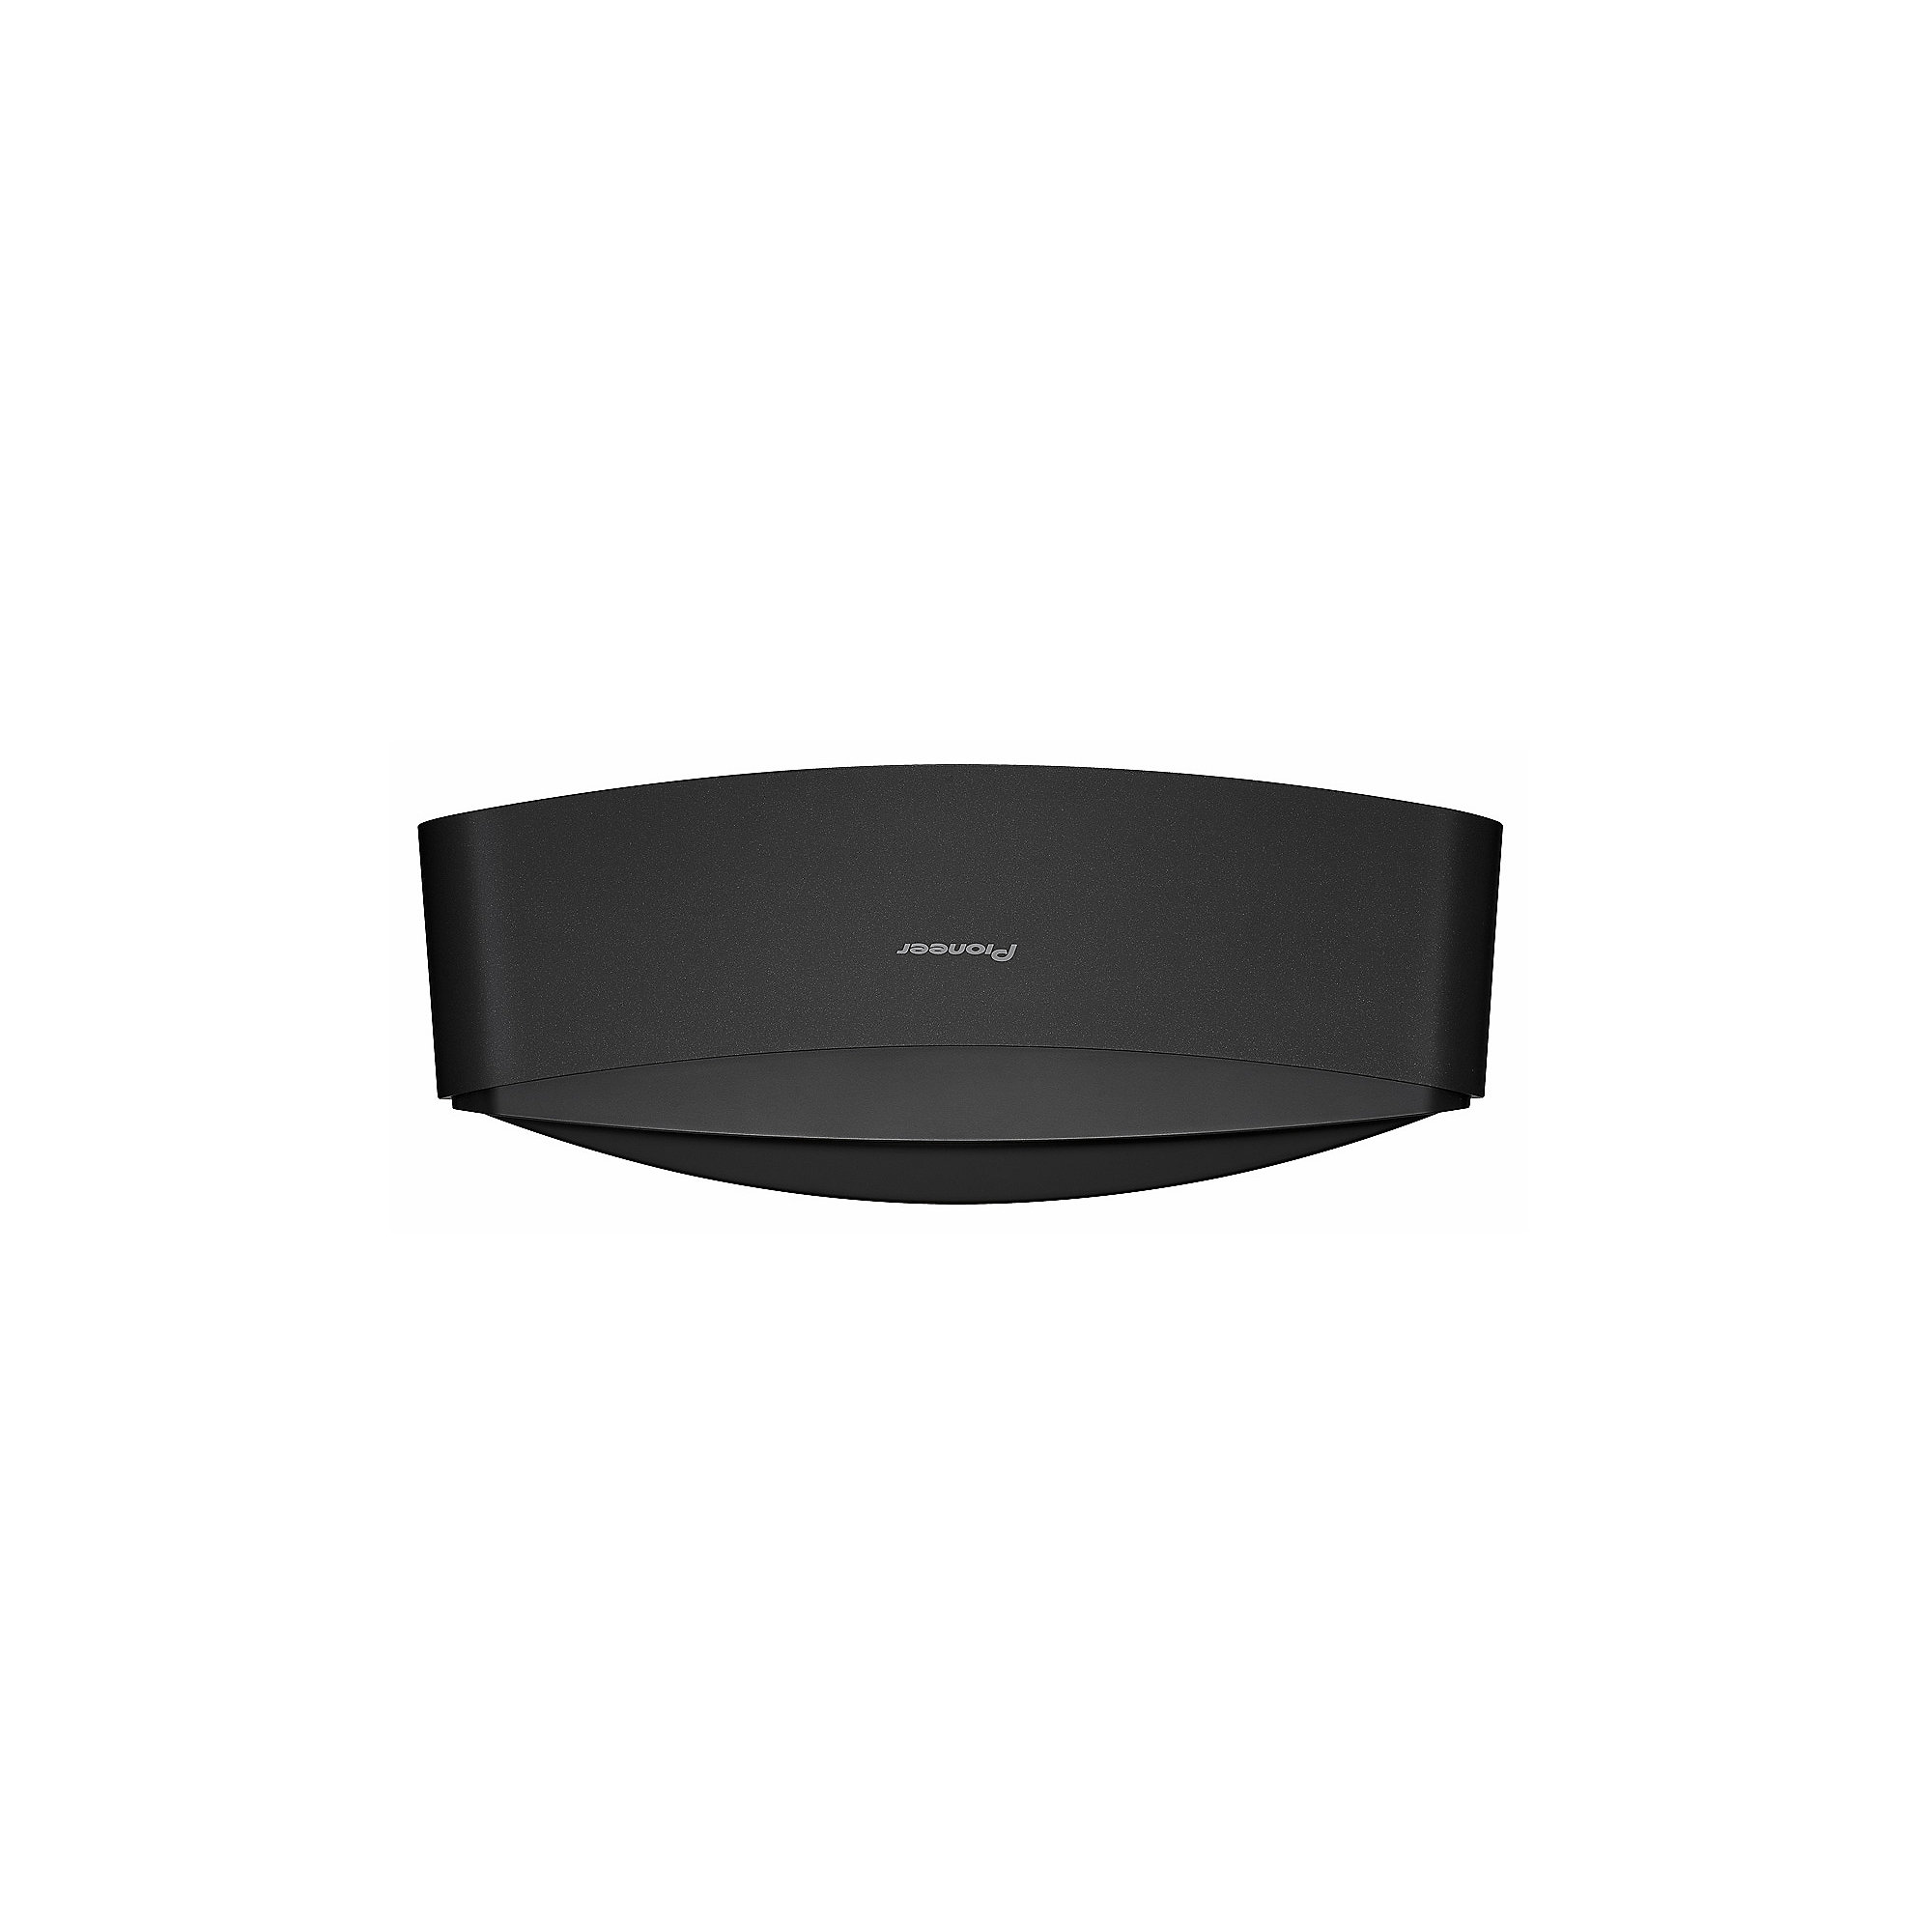 Pioneer MRX-5 Wireless Multi-Room-Lautsprecher WLAN Bluetooth Chromecast schwarz